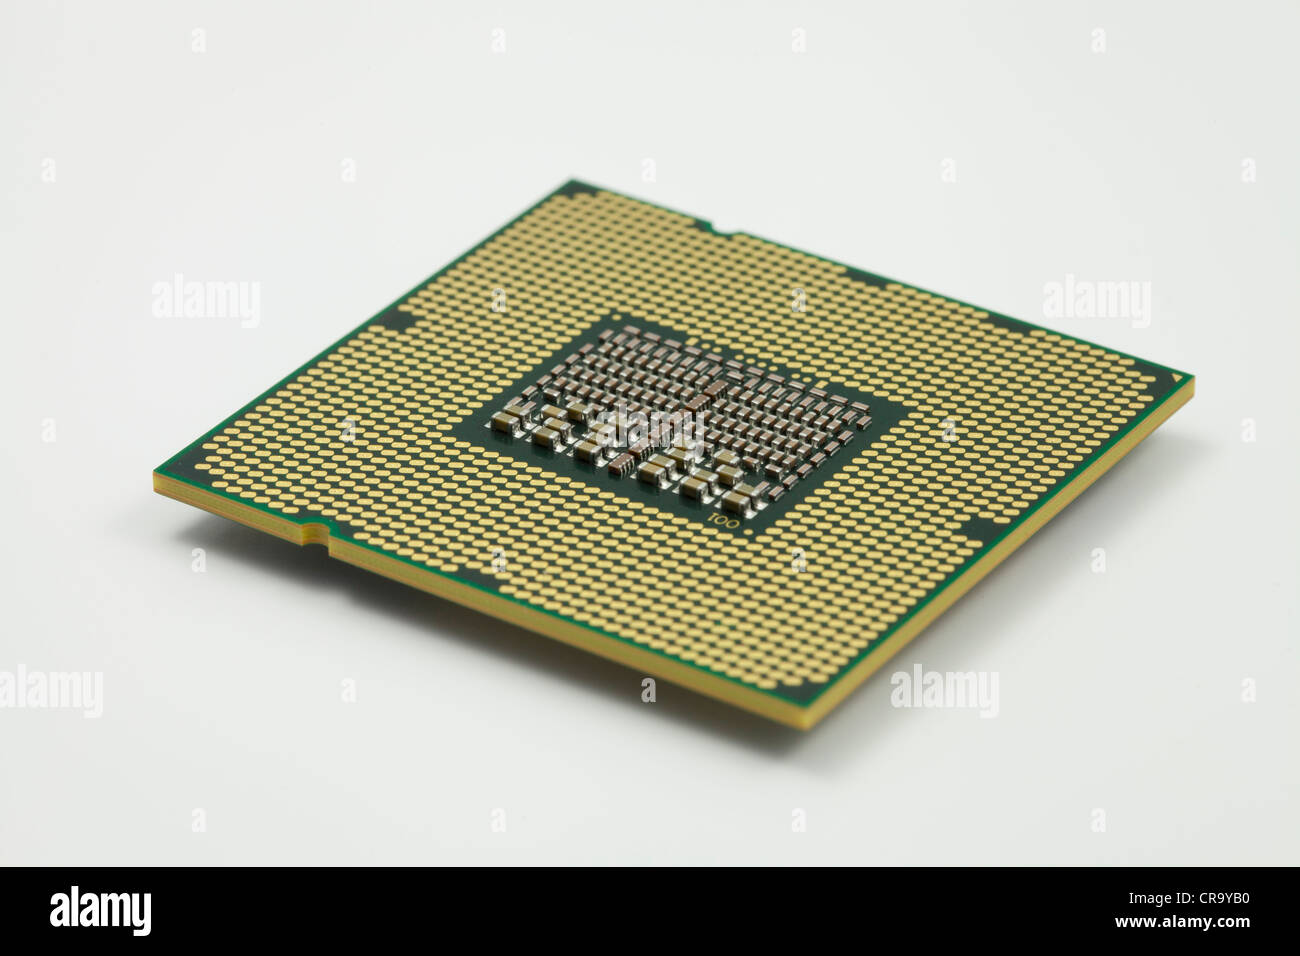 close up of a Xeon CPU chip on a white background - Stock Image